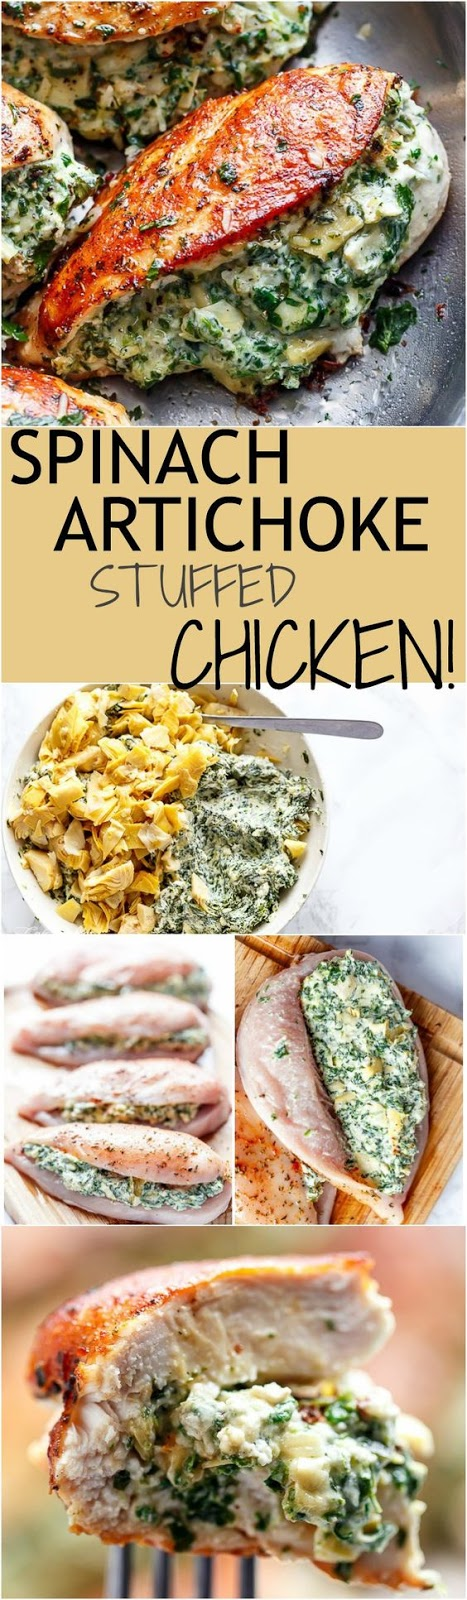 http://mintyfood.blogspot.com/2016/11/spinach-artichoke-stuffed-chicken.html